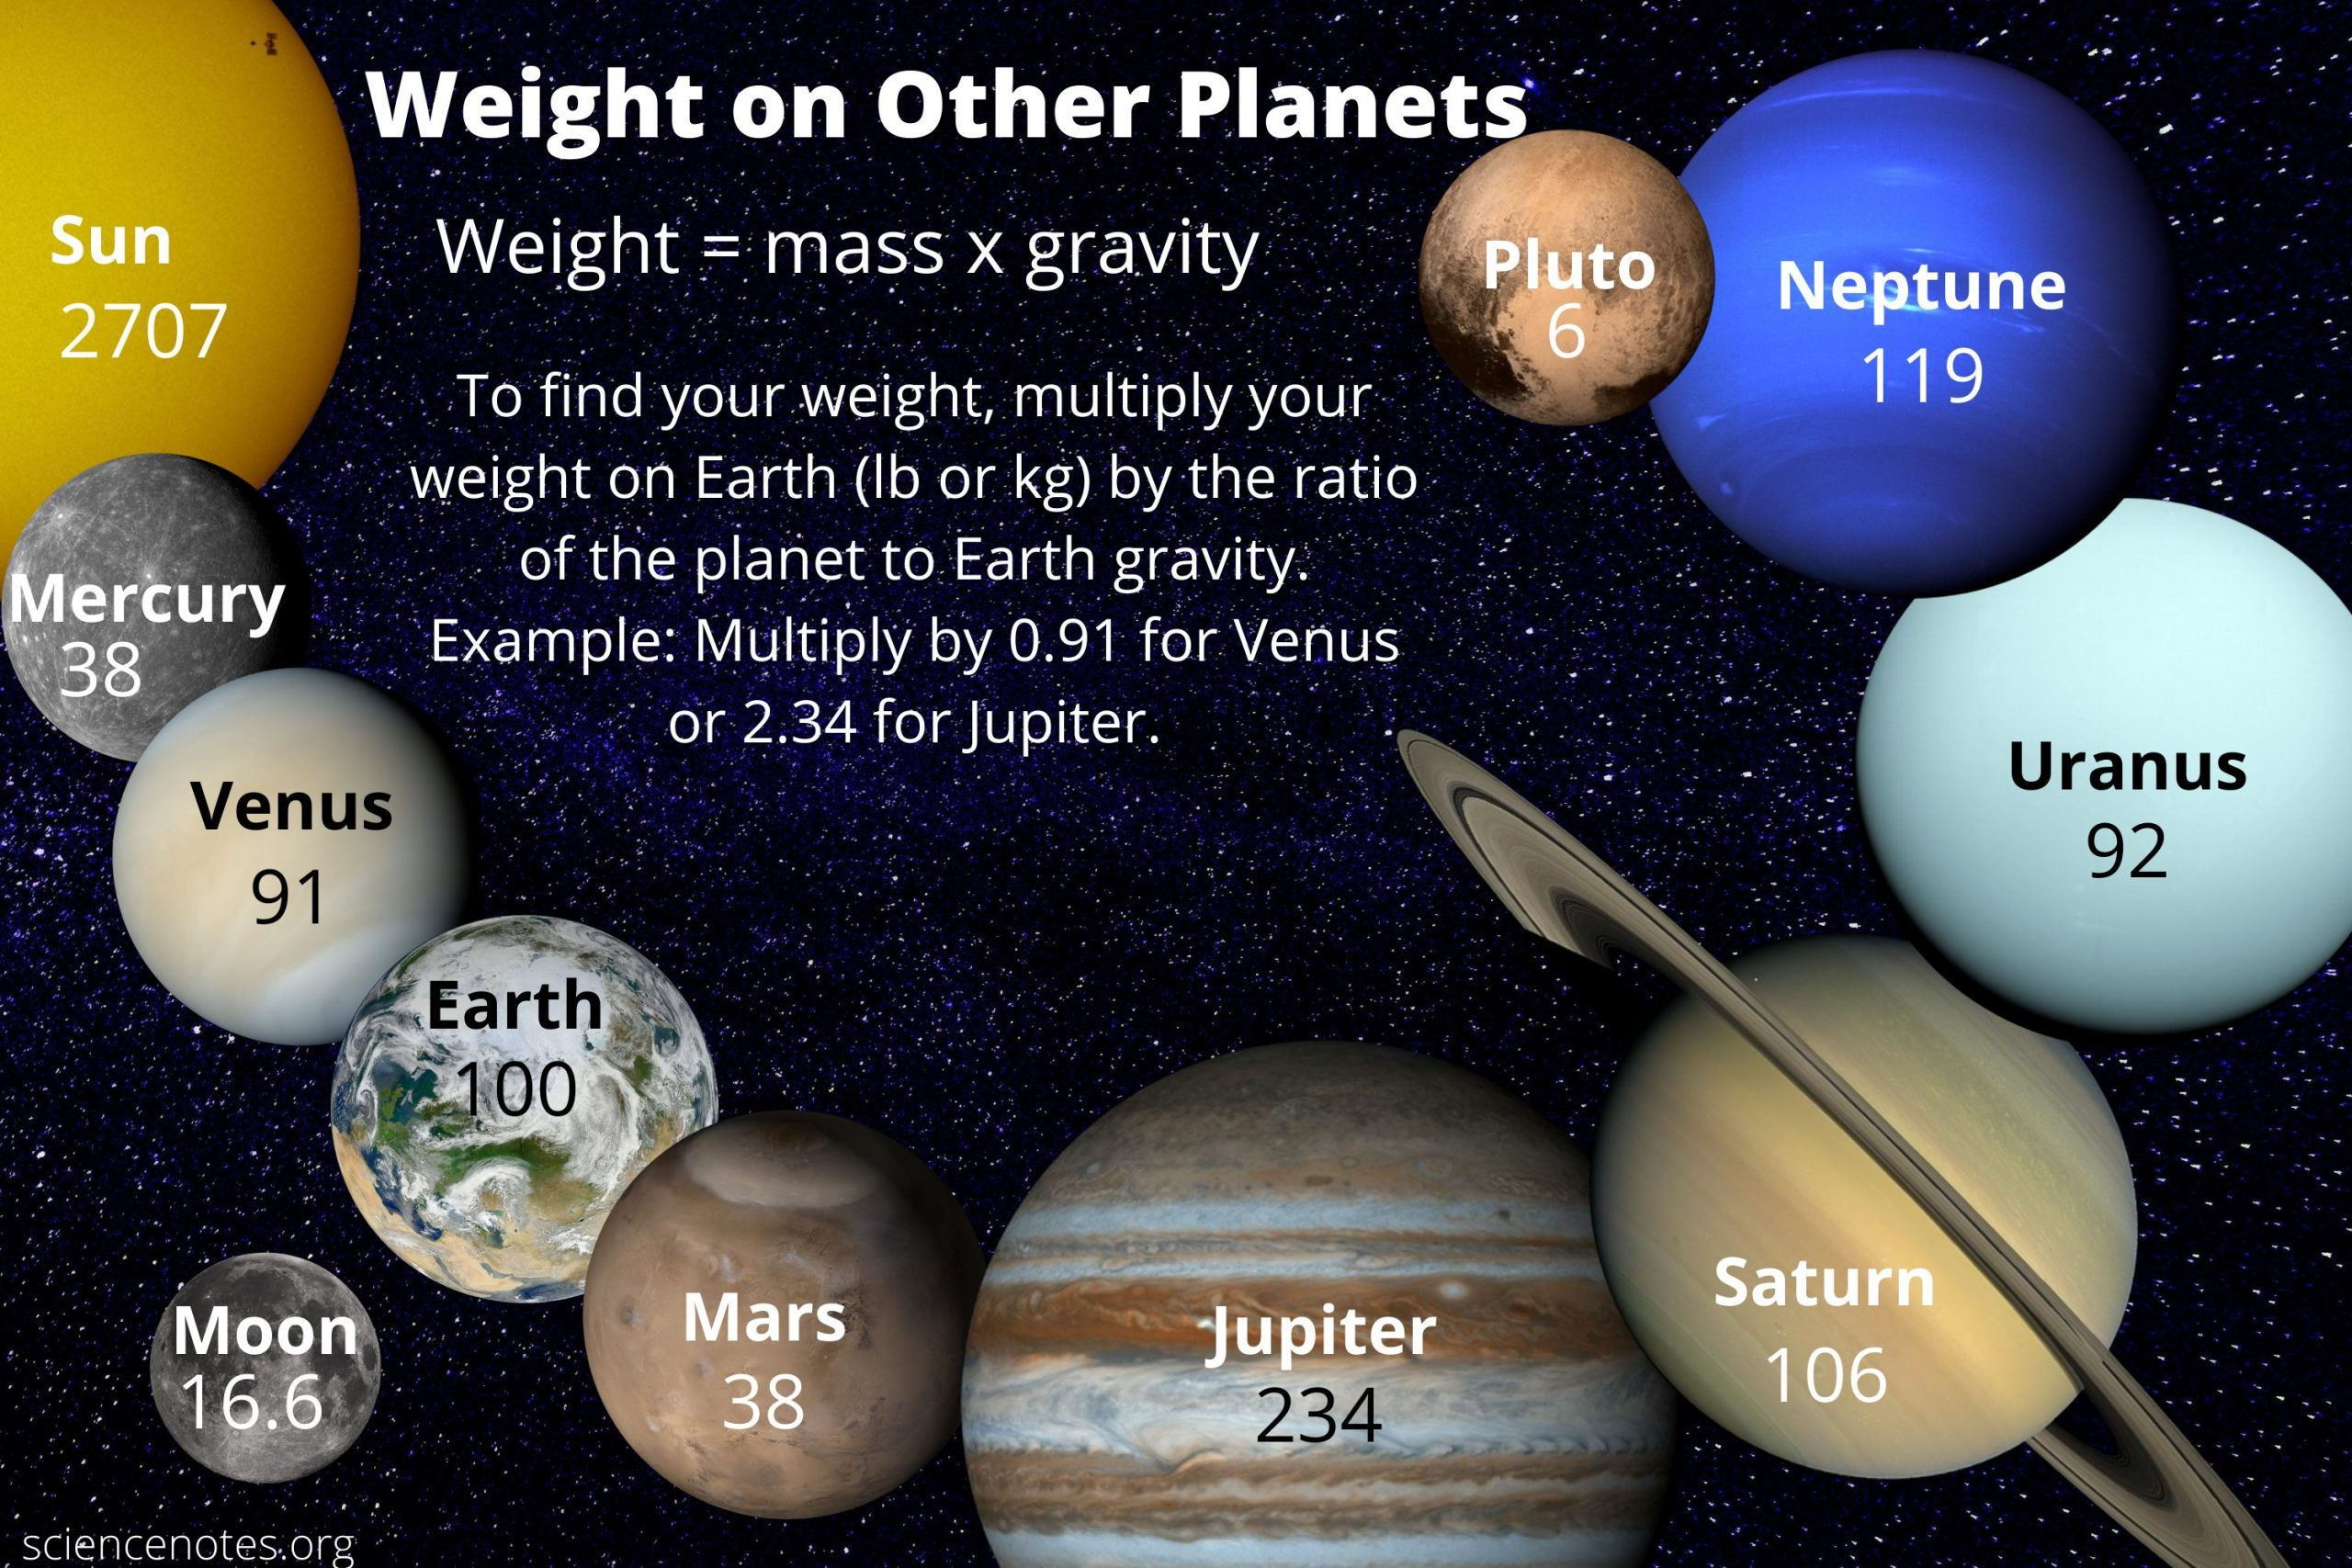 How To Calculate Weight On Other Planets